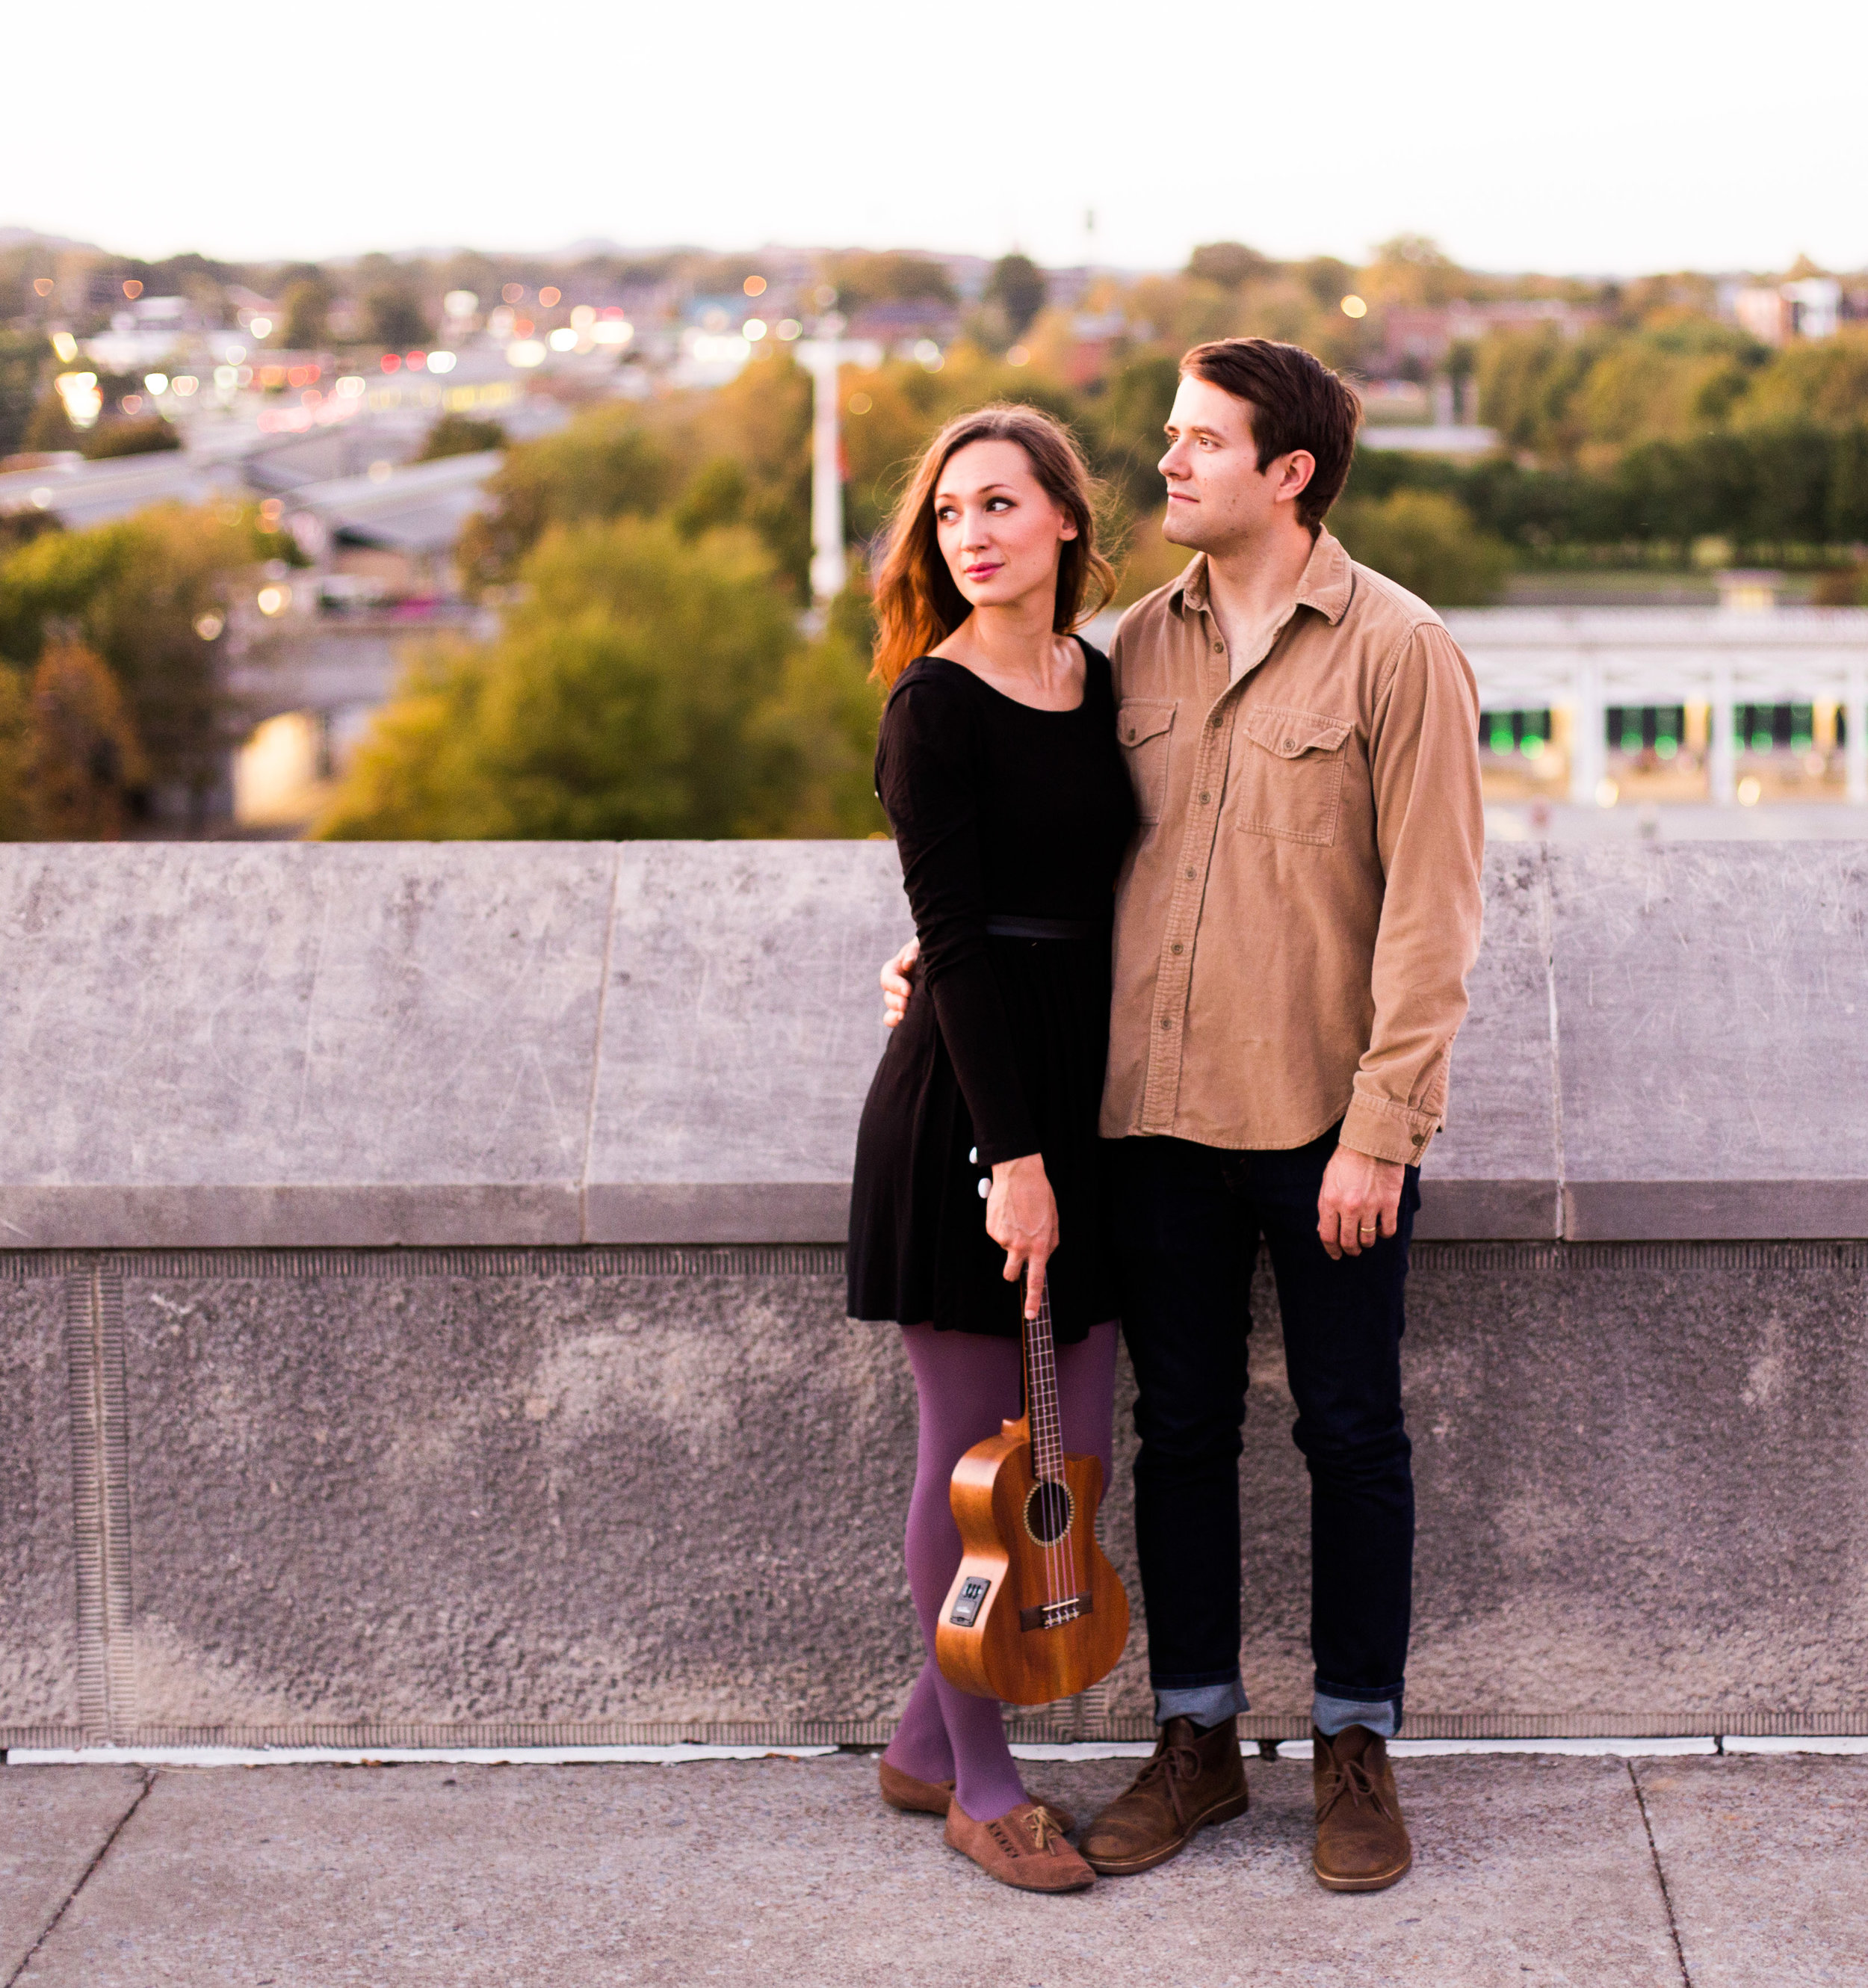 dreamy engagement photography nashville tn; harvest sound artist austin and courtney great nashville musicians bicentennial park capitol hill